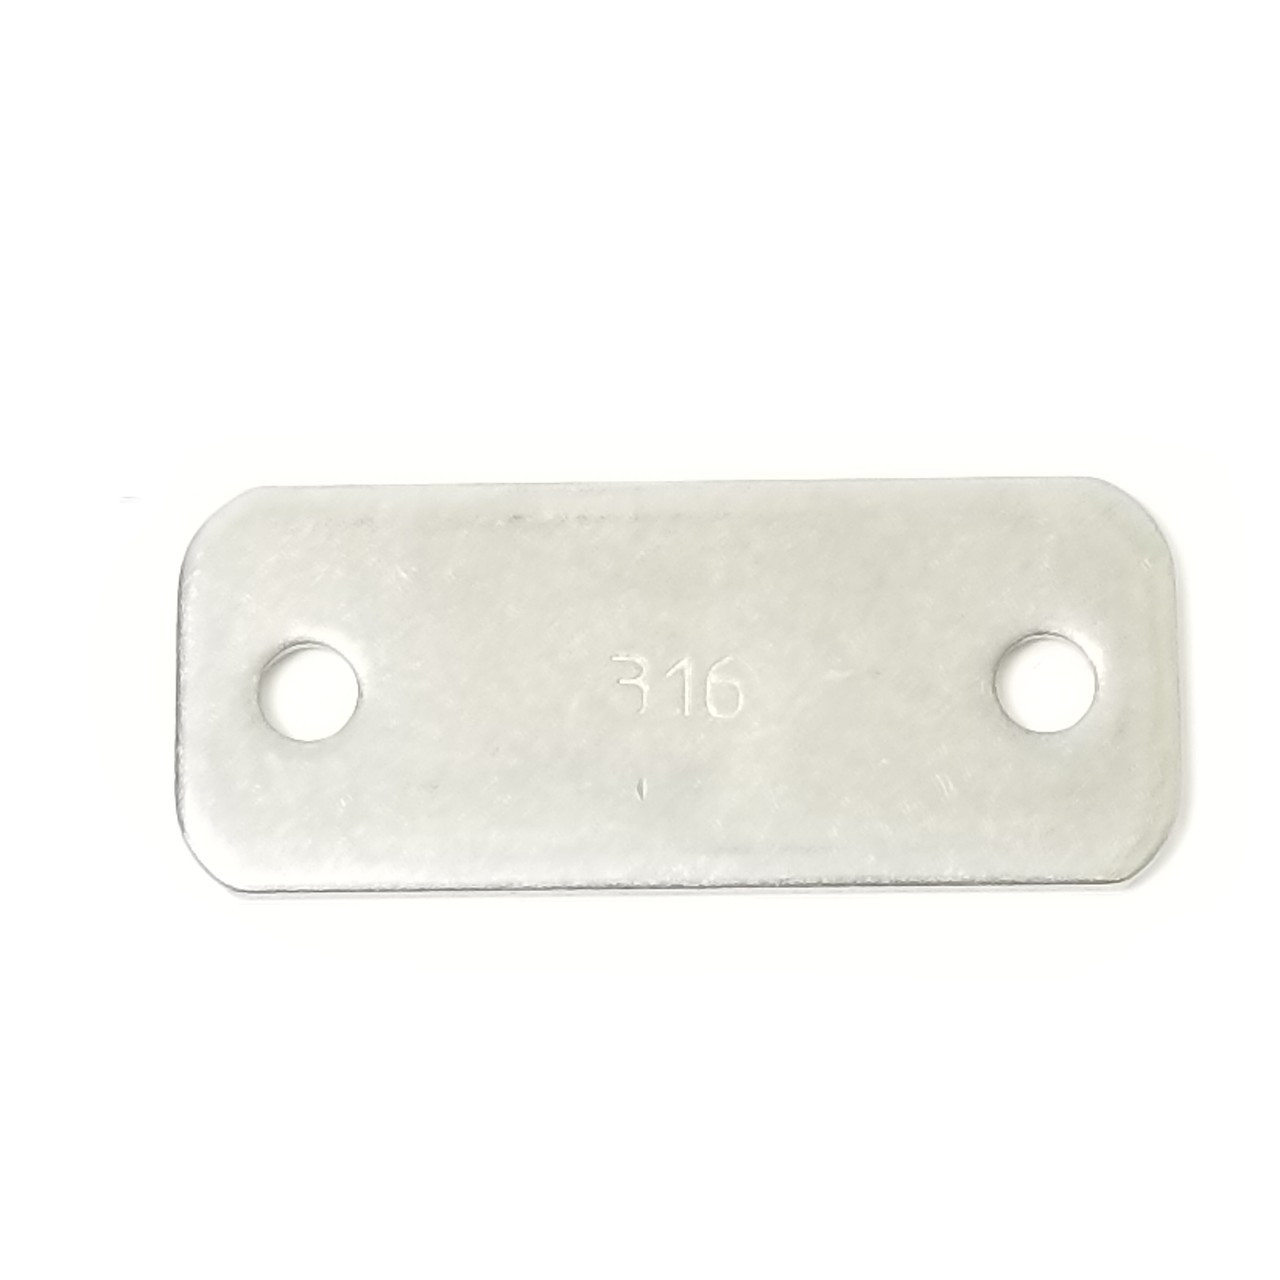 TP6316 Top plate